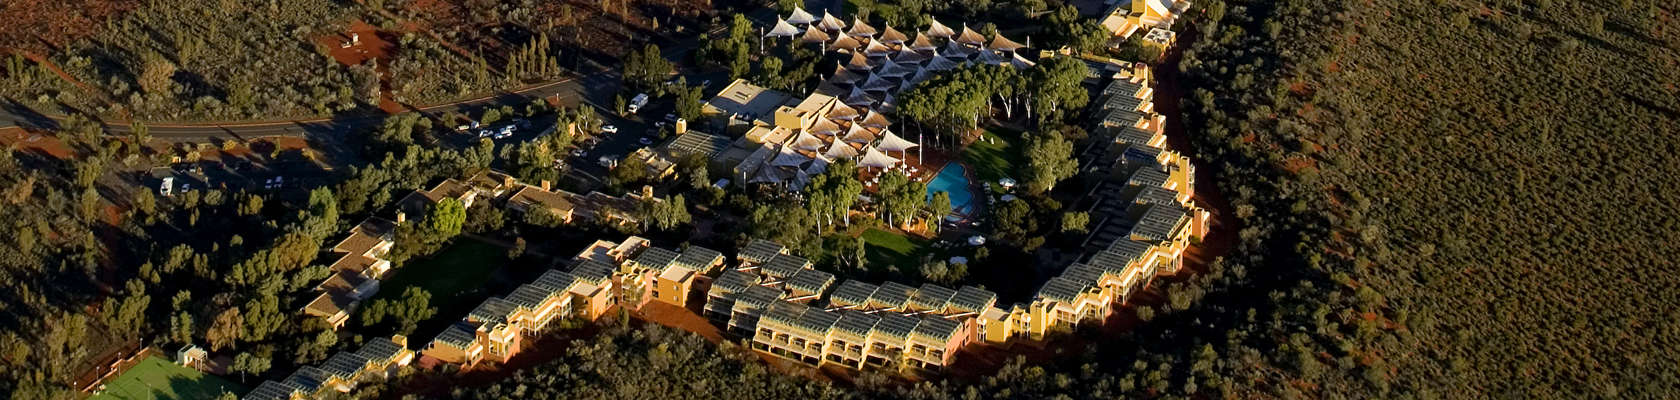 resort-narrow-aerial-1680x400.jpg